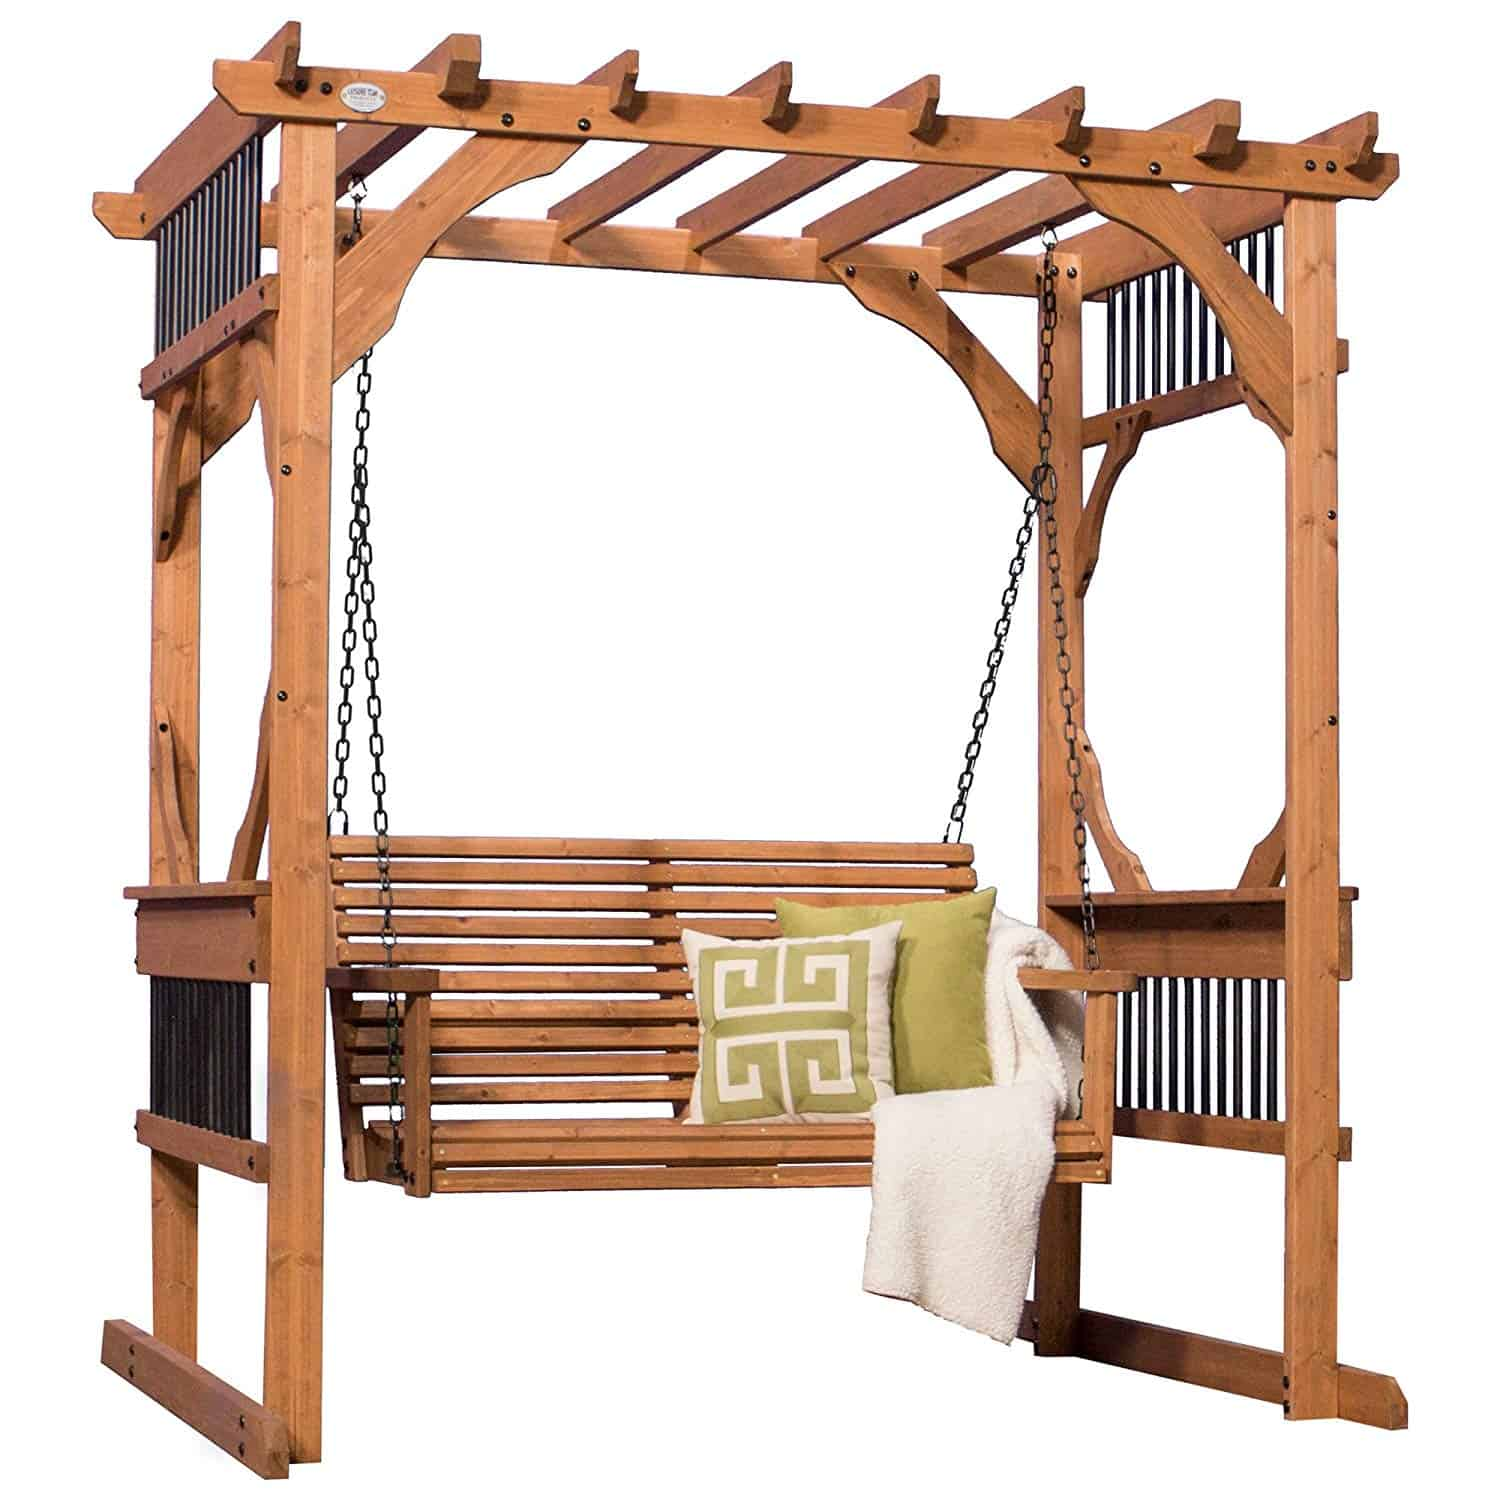 Backyard-Cedar-Pergola-Swing